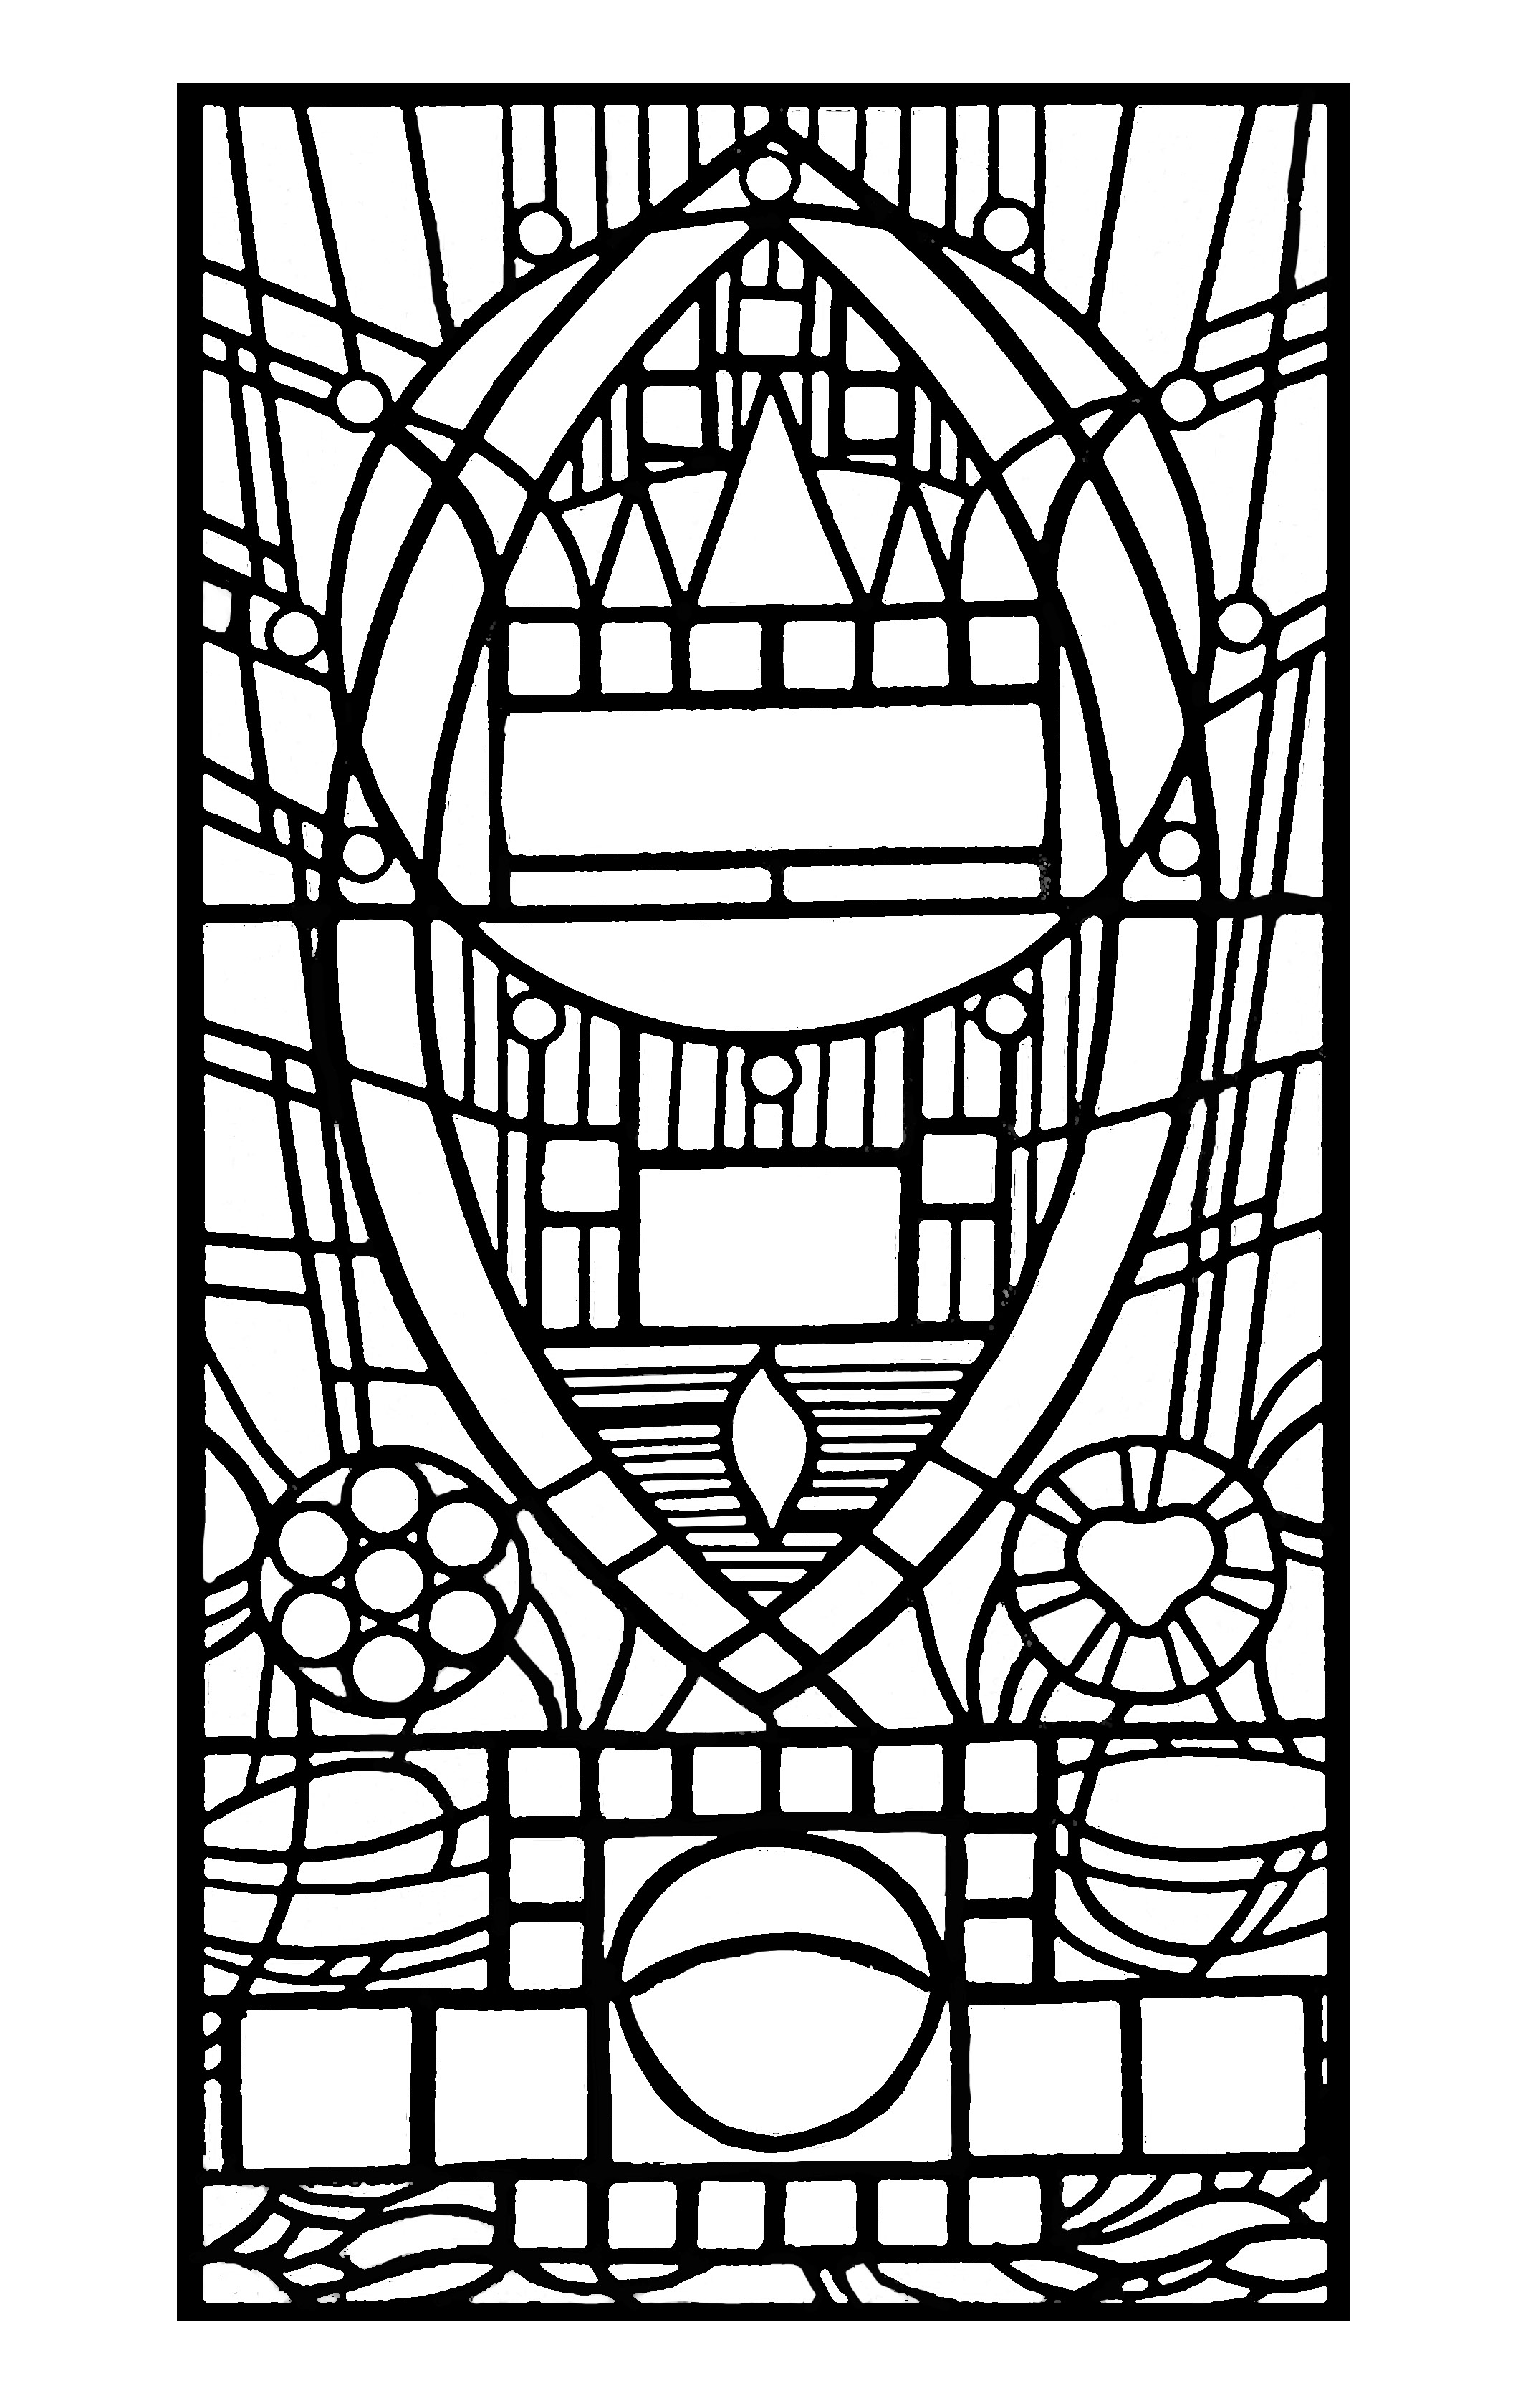 stained glass coloring pages for adults printable easter stained glass coloring pages coloring home for adults coloring glass stained pages